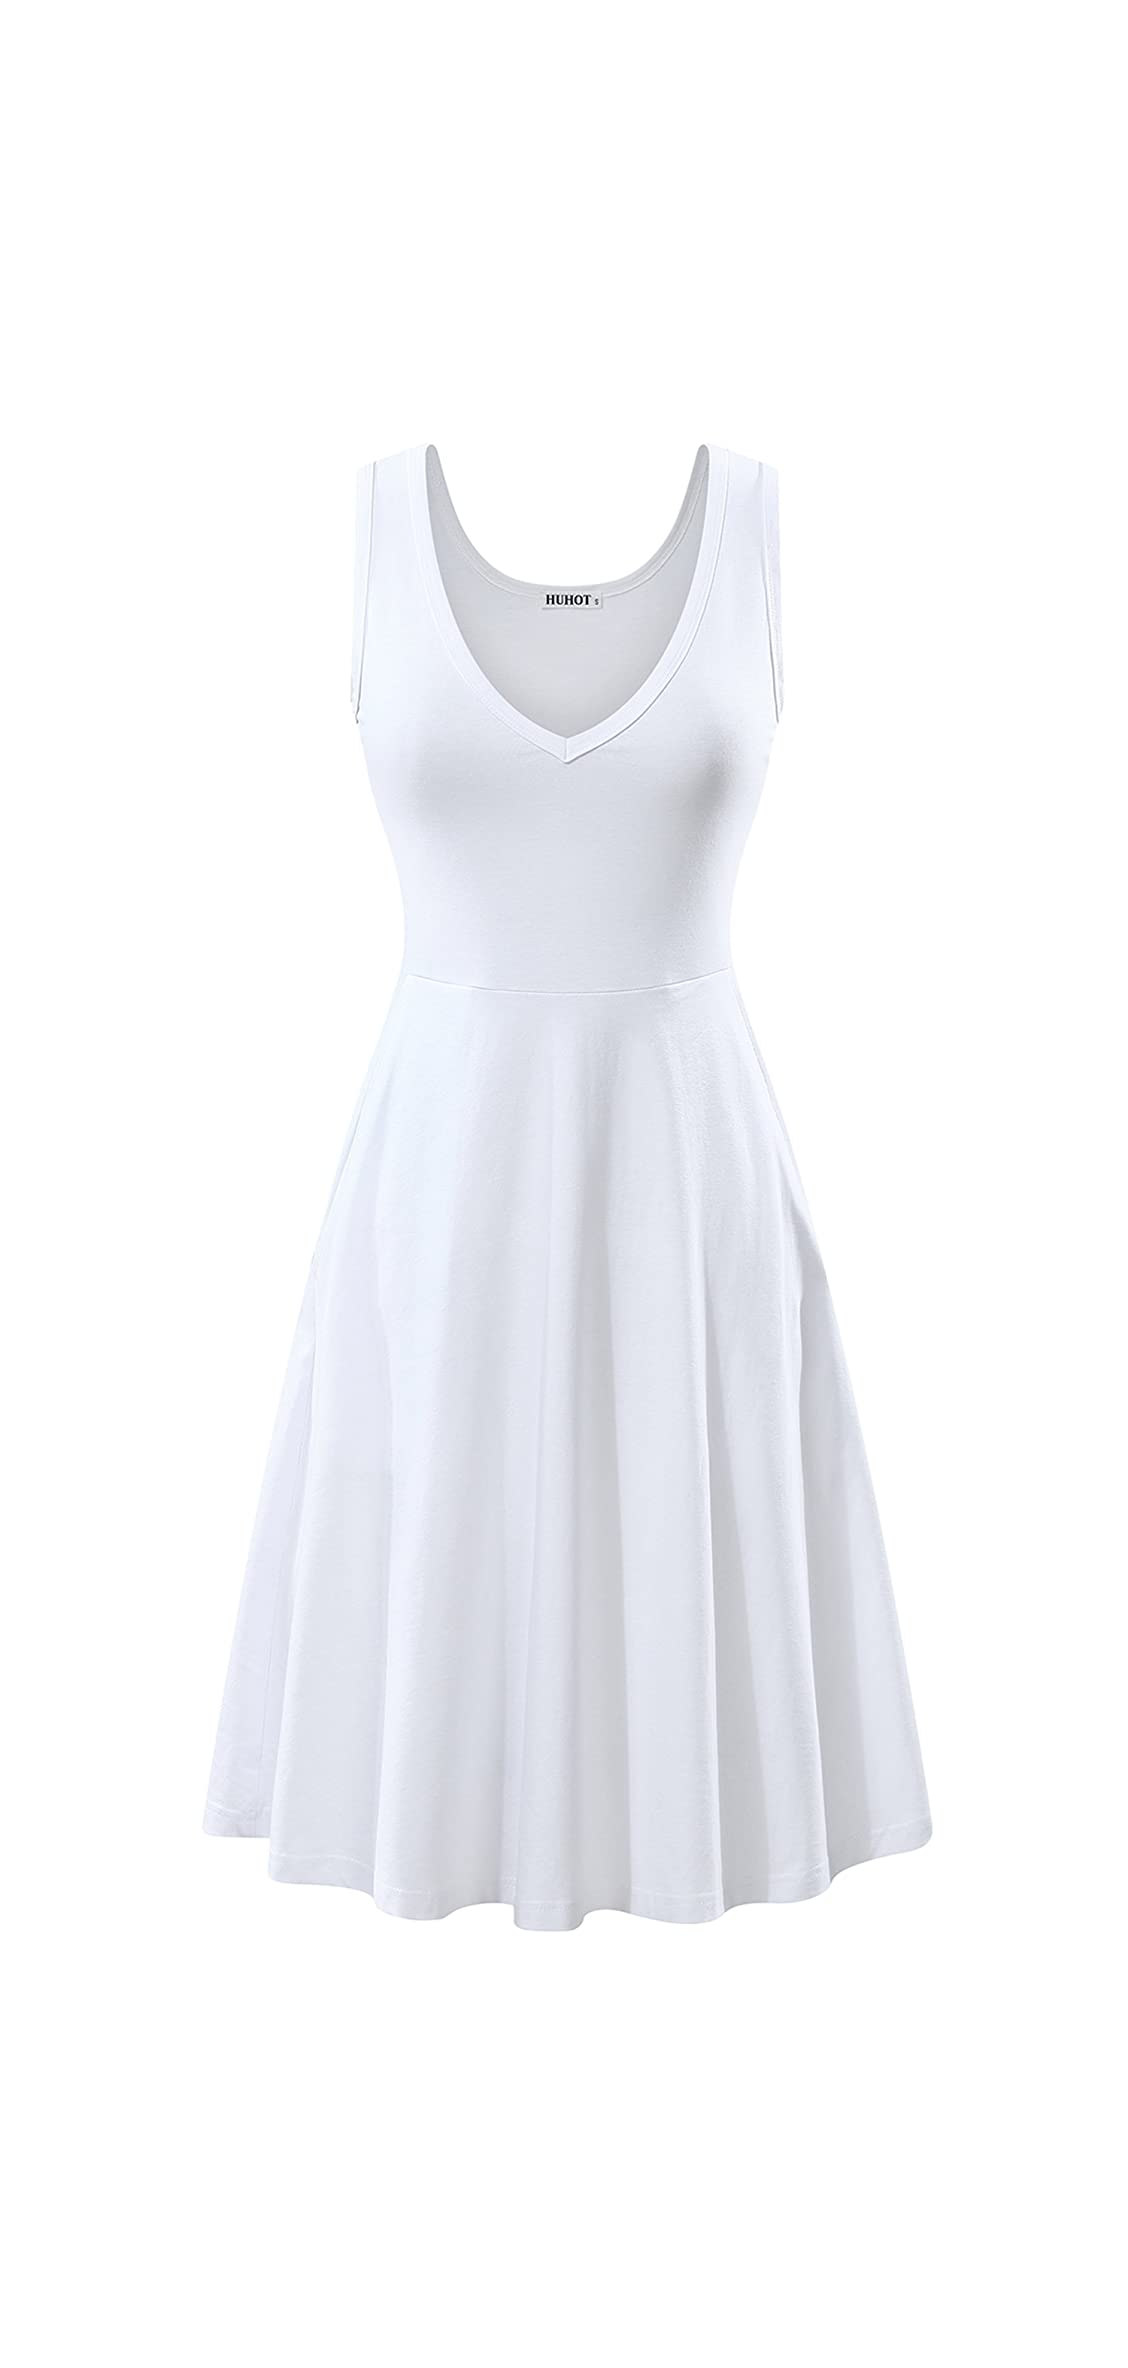 Womens Sleeveless V Neck Dress With Pocket Summer Beach